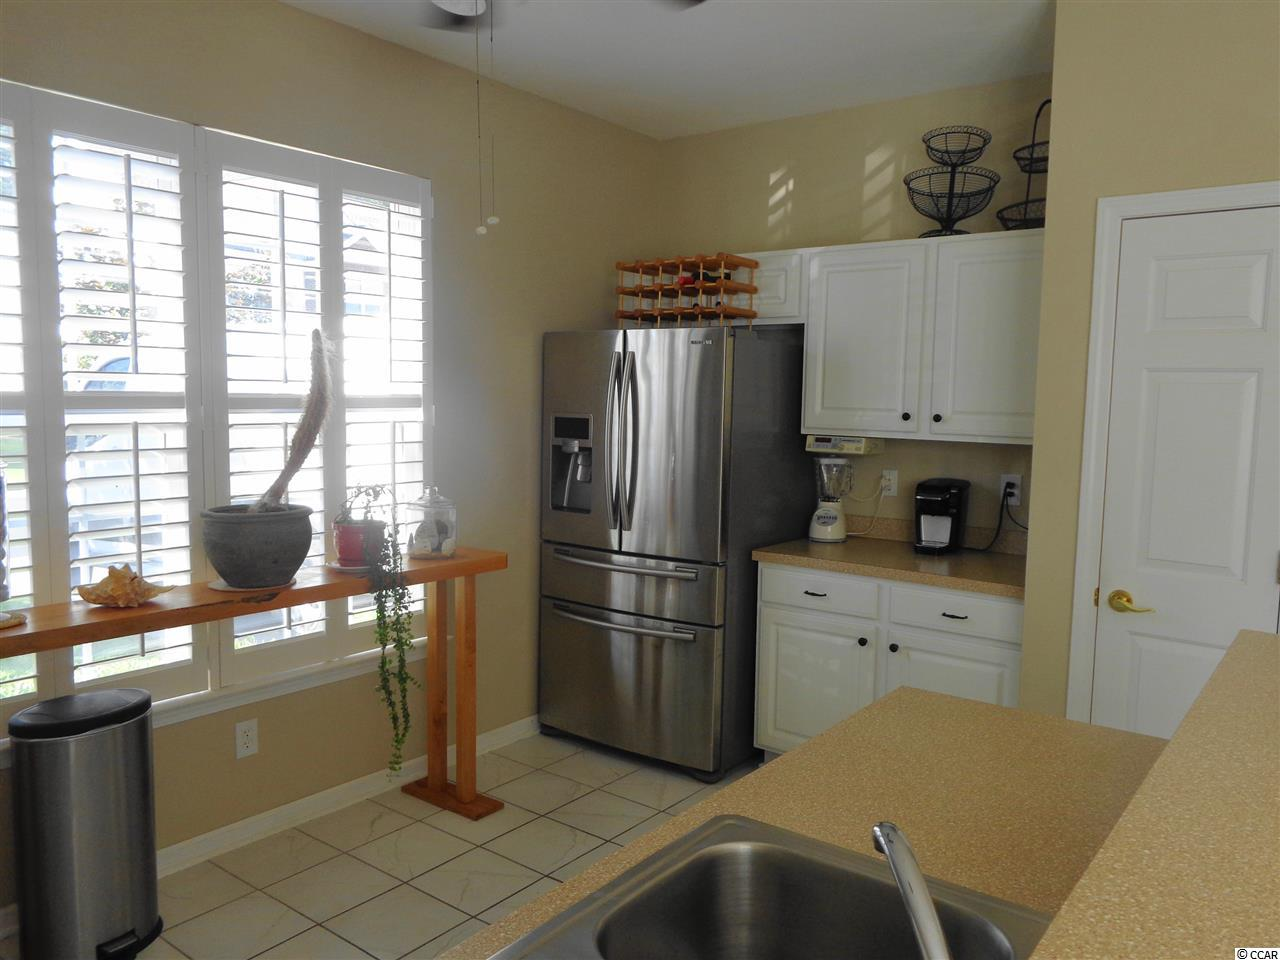 ST ANDREWS TOWNHOMES condo at 296 Connemara Dr E for sale. 1716845